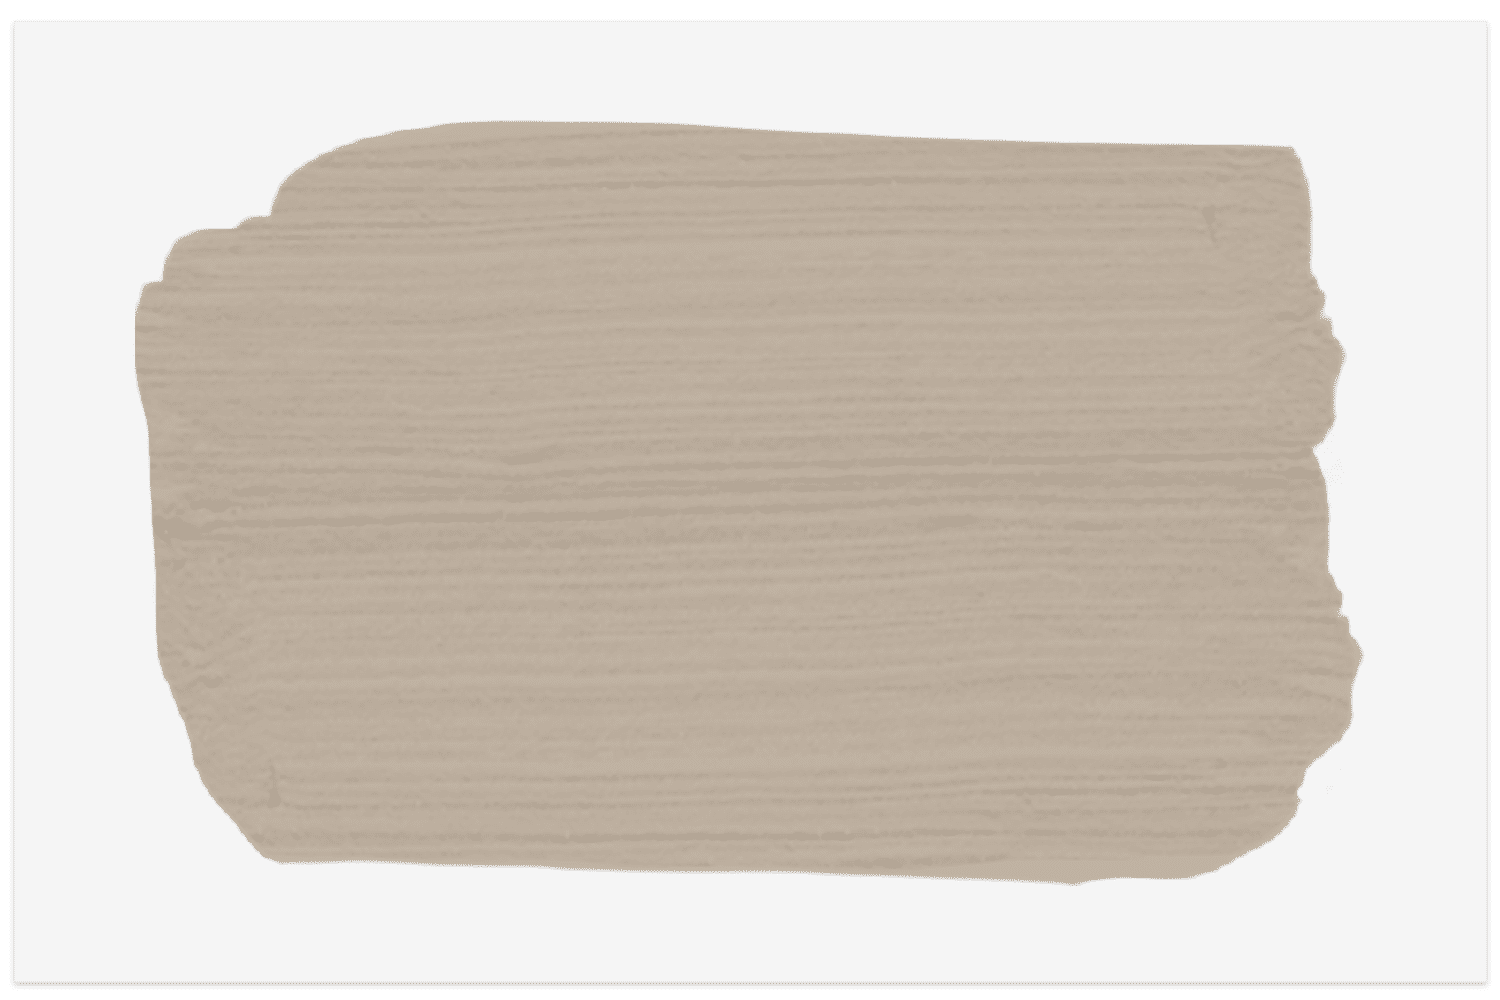 Sherwin-Williams Balanced Beige swatch